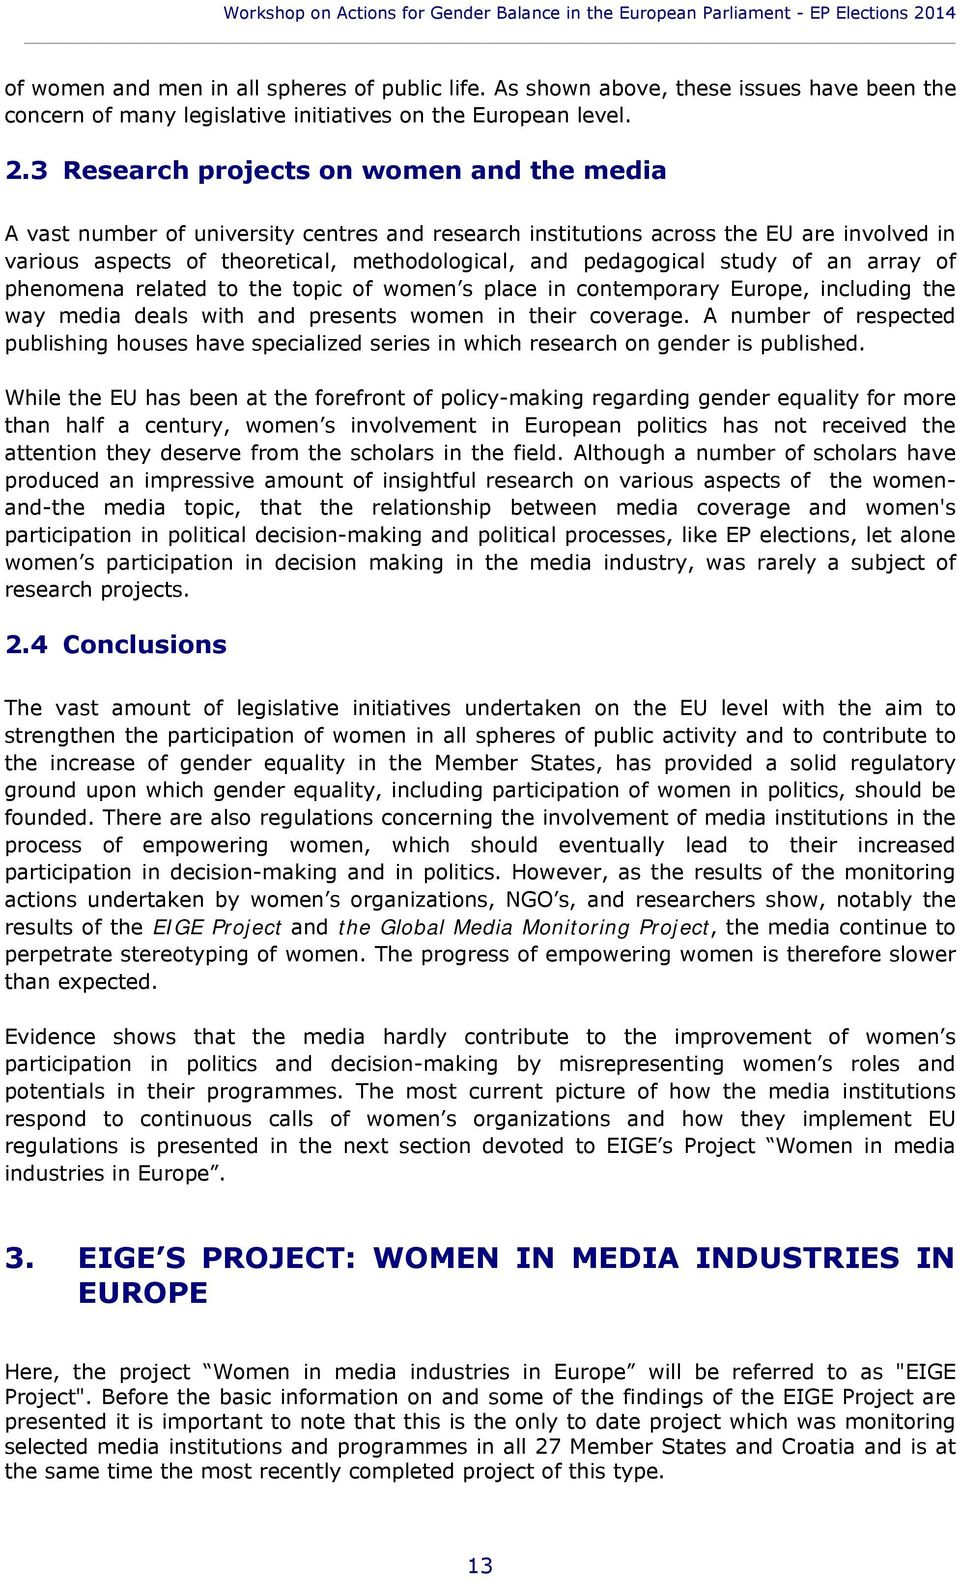 3 Research projects on women and the media A vast number of university centres and research institutions across the EU are involved in various aspects of theoretical, methodological, and pedagogical